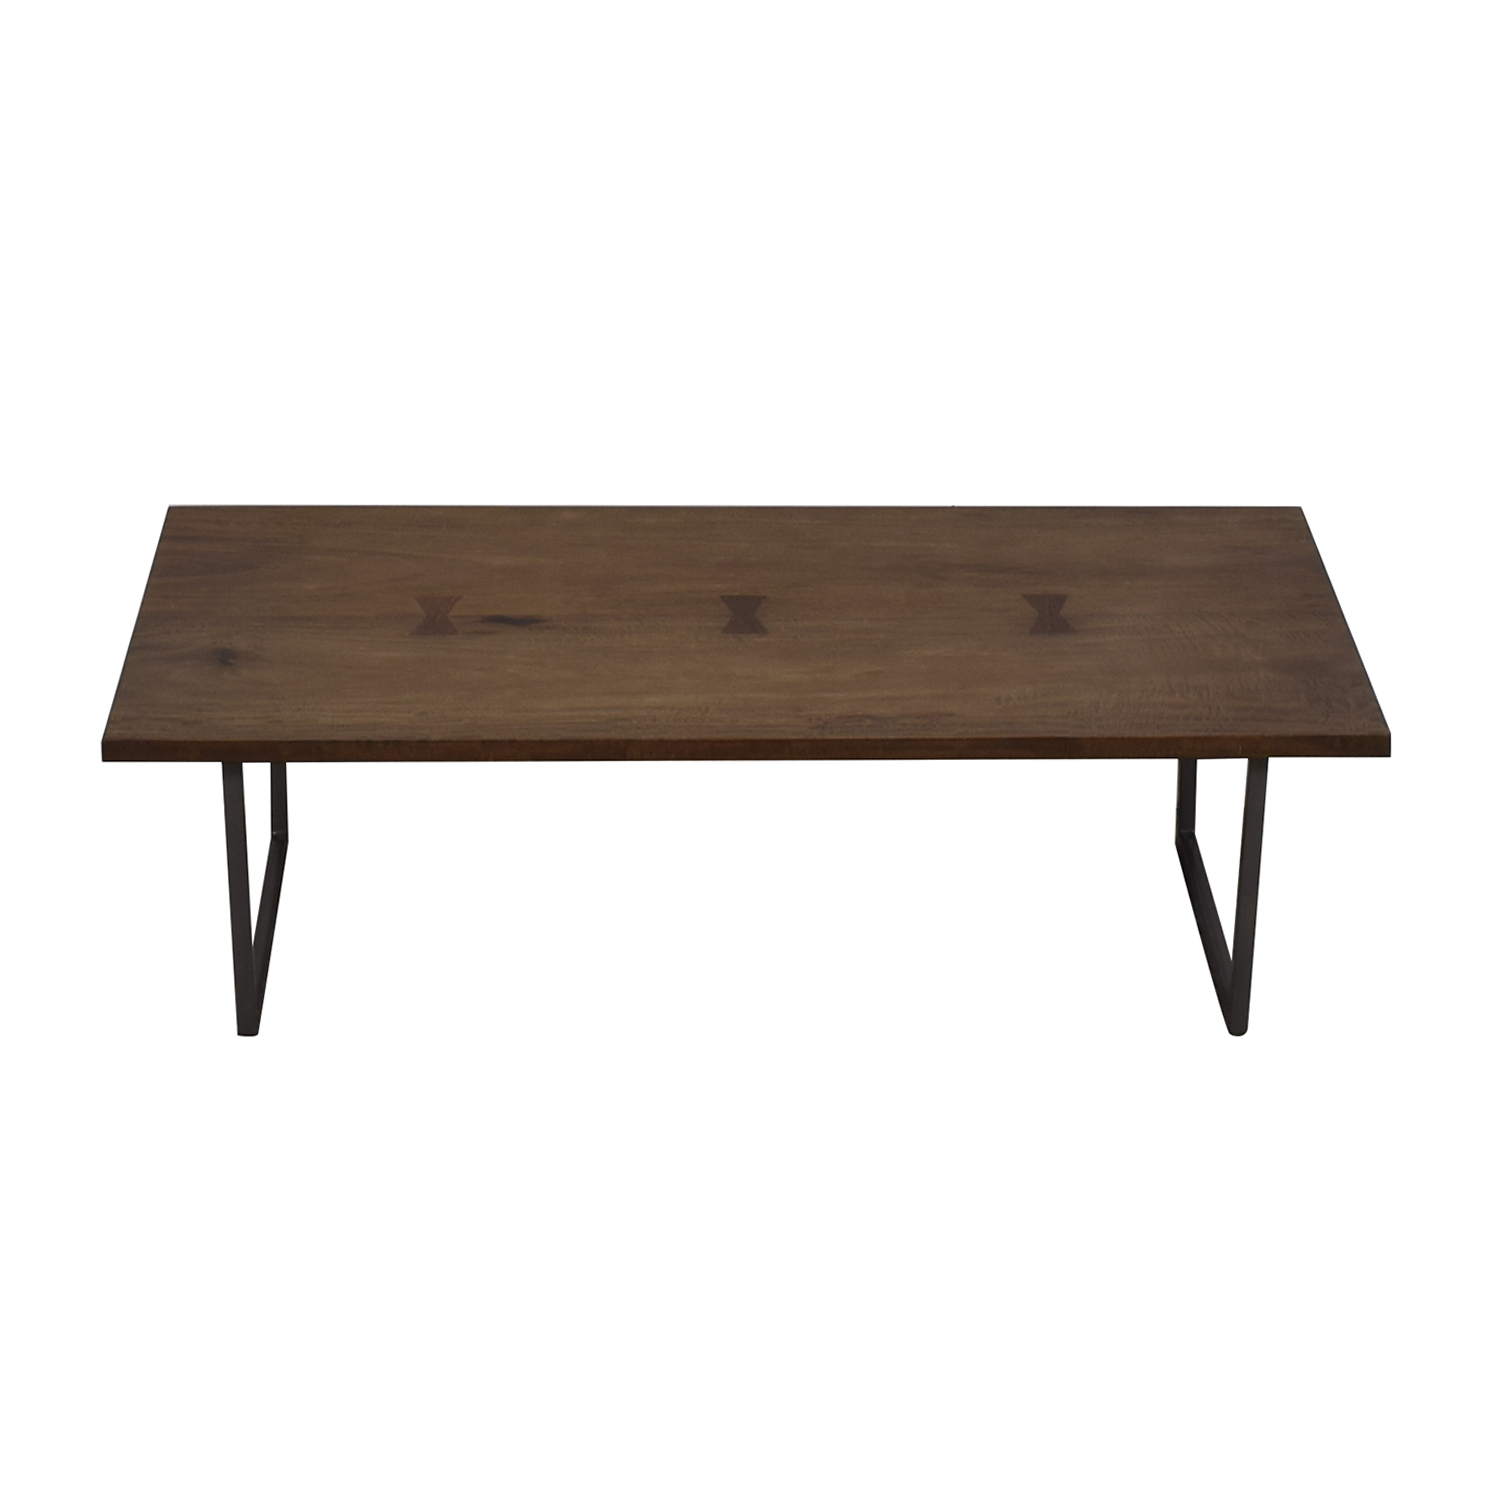 CB2 CB2 Rustic Wood and Metal Coffee Table nyc